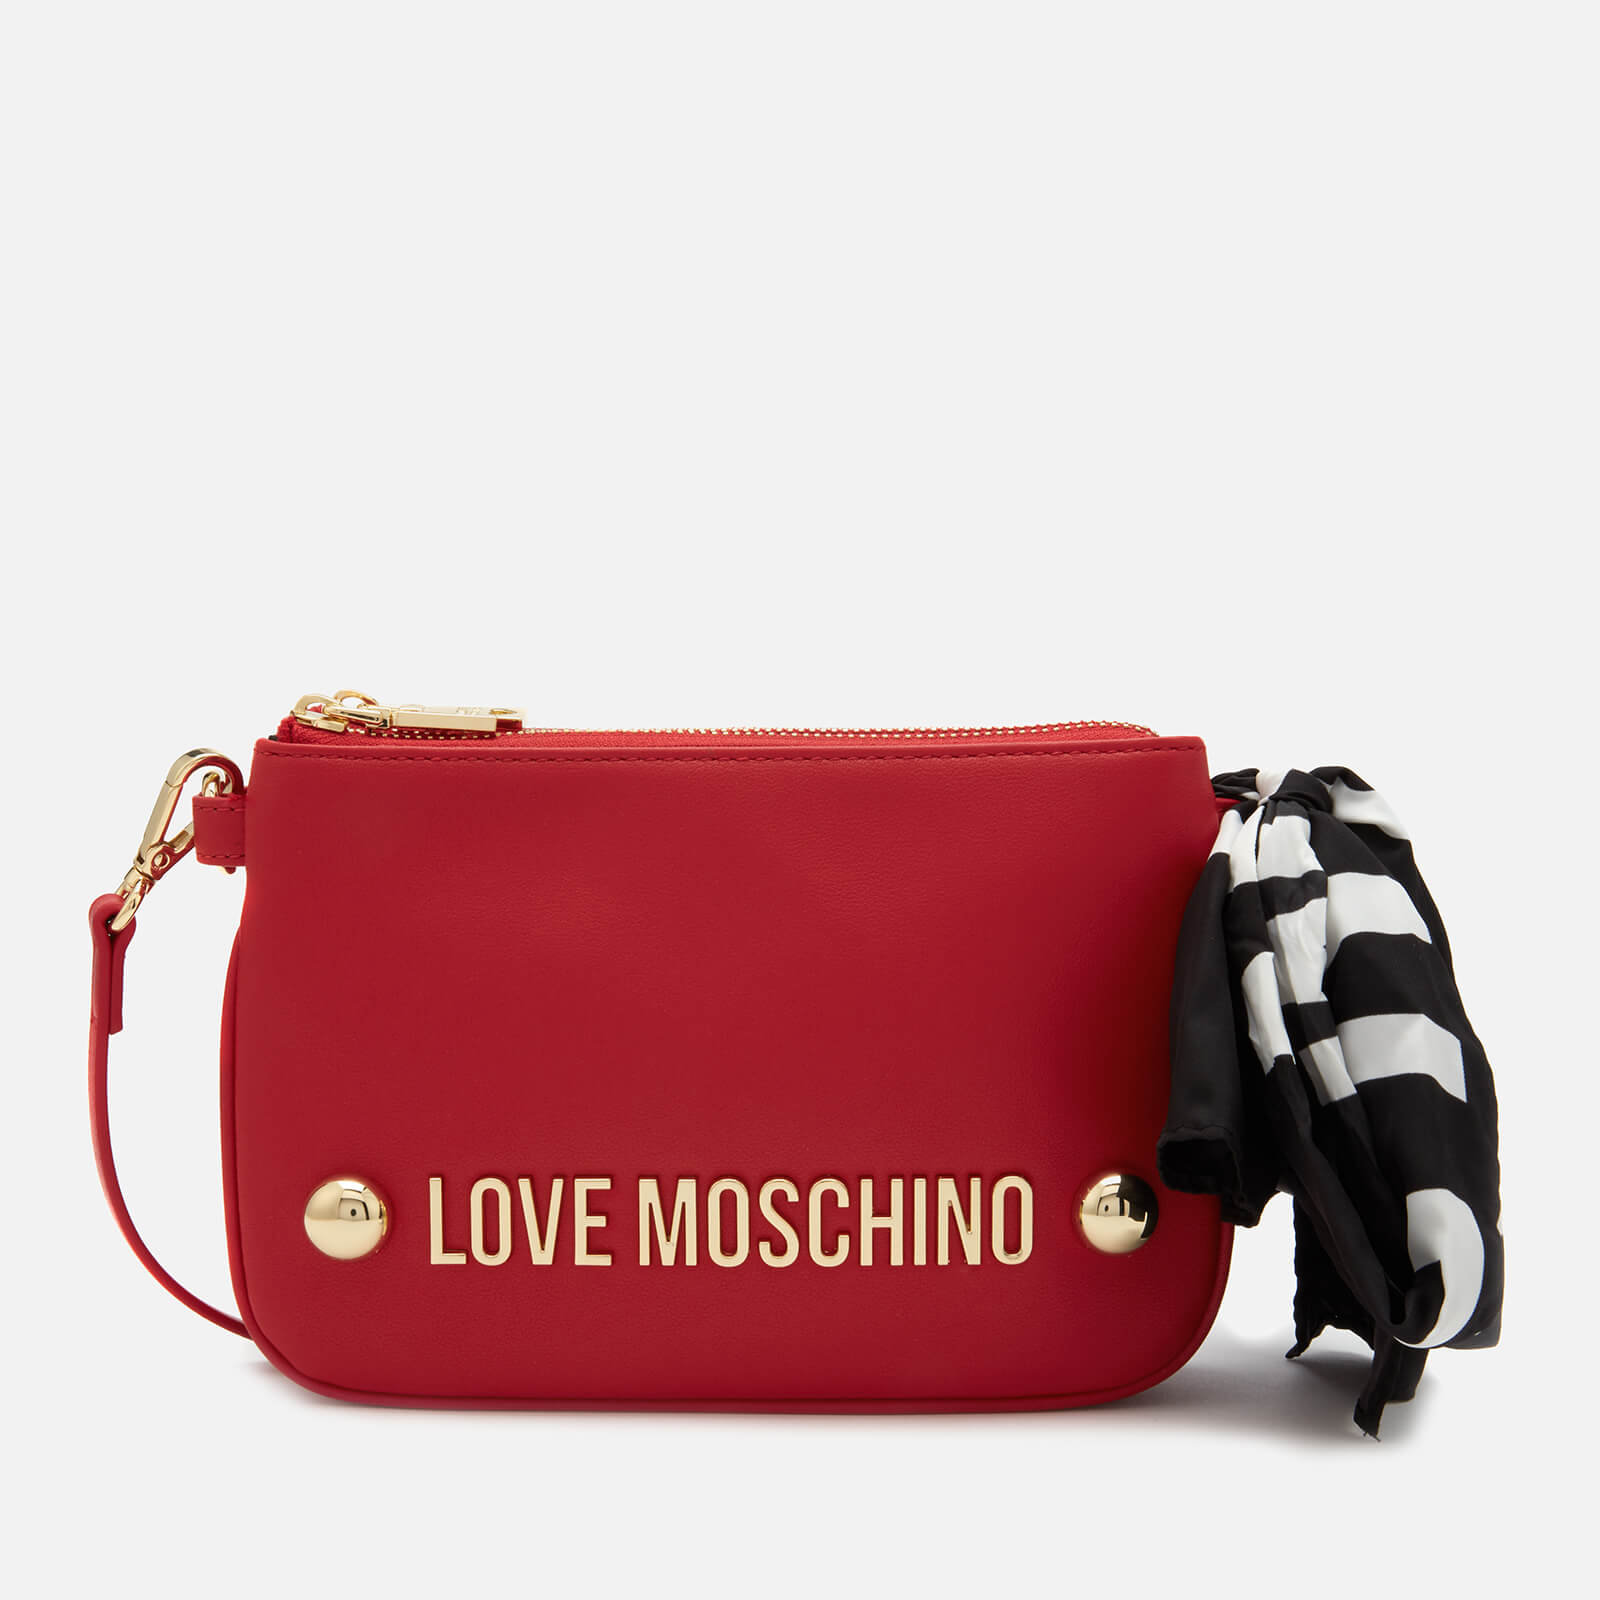 5c29b2f1d Love Moschino Women's Scarf Shoulder Bag - Red